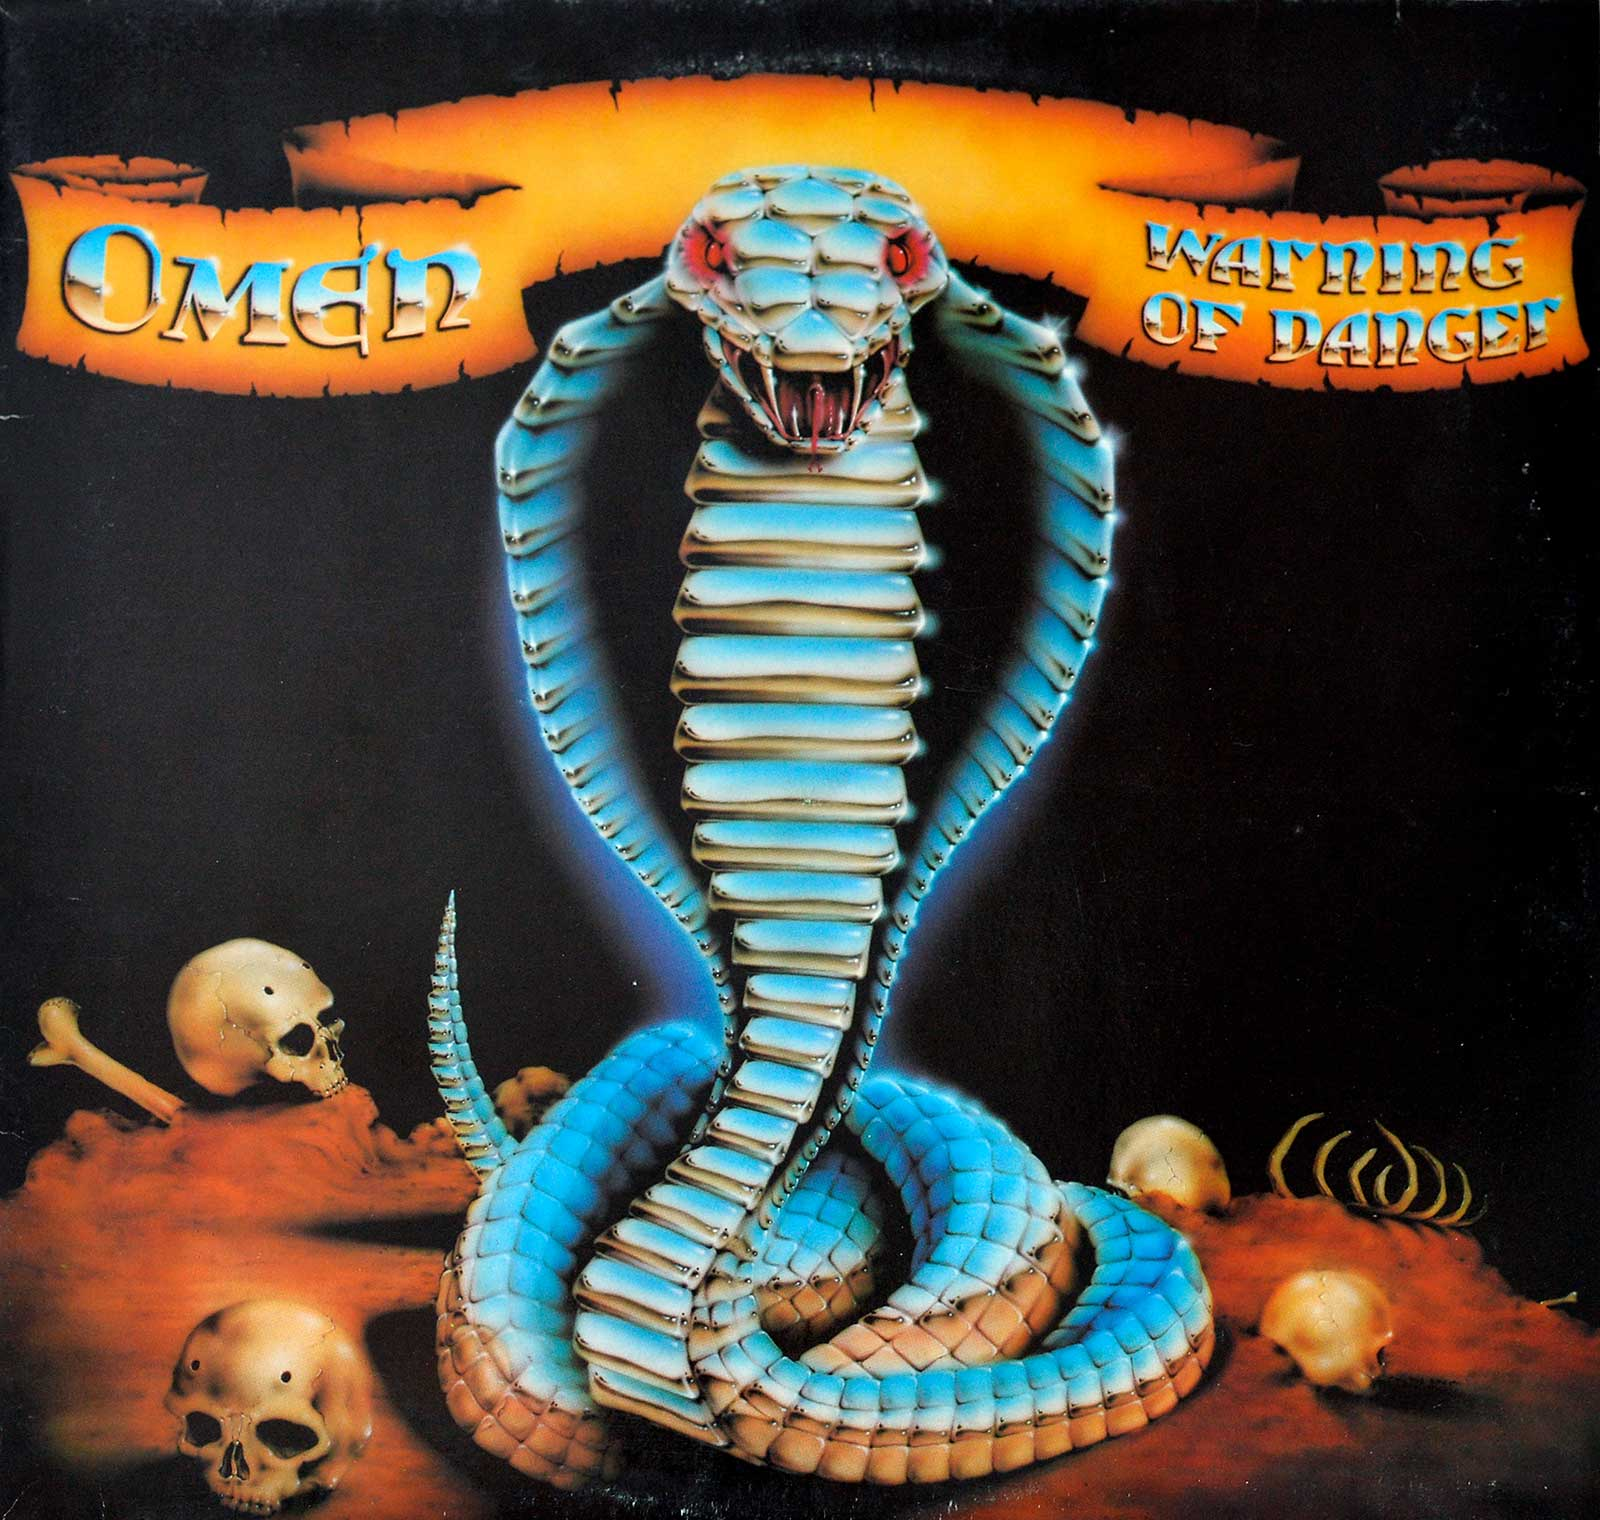 large photo of the album front cover of: Warning of Danger by Omen